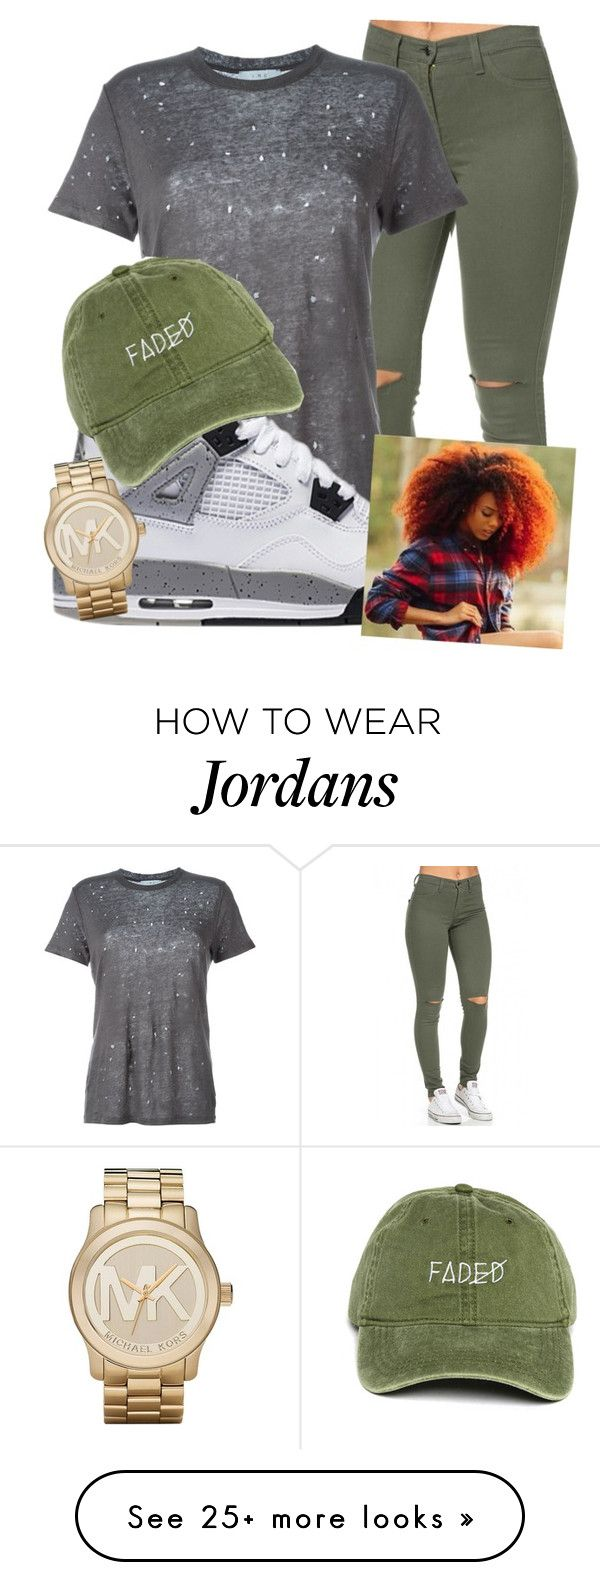 """Untitled #175"" by brooklynnmckenna on Polyvore featuring IRO and Michael Kors"